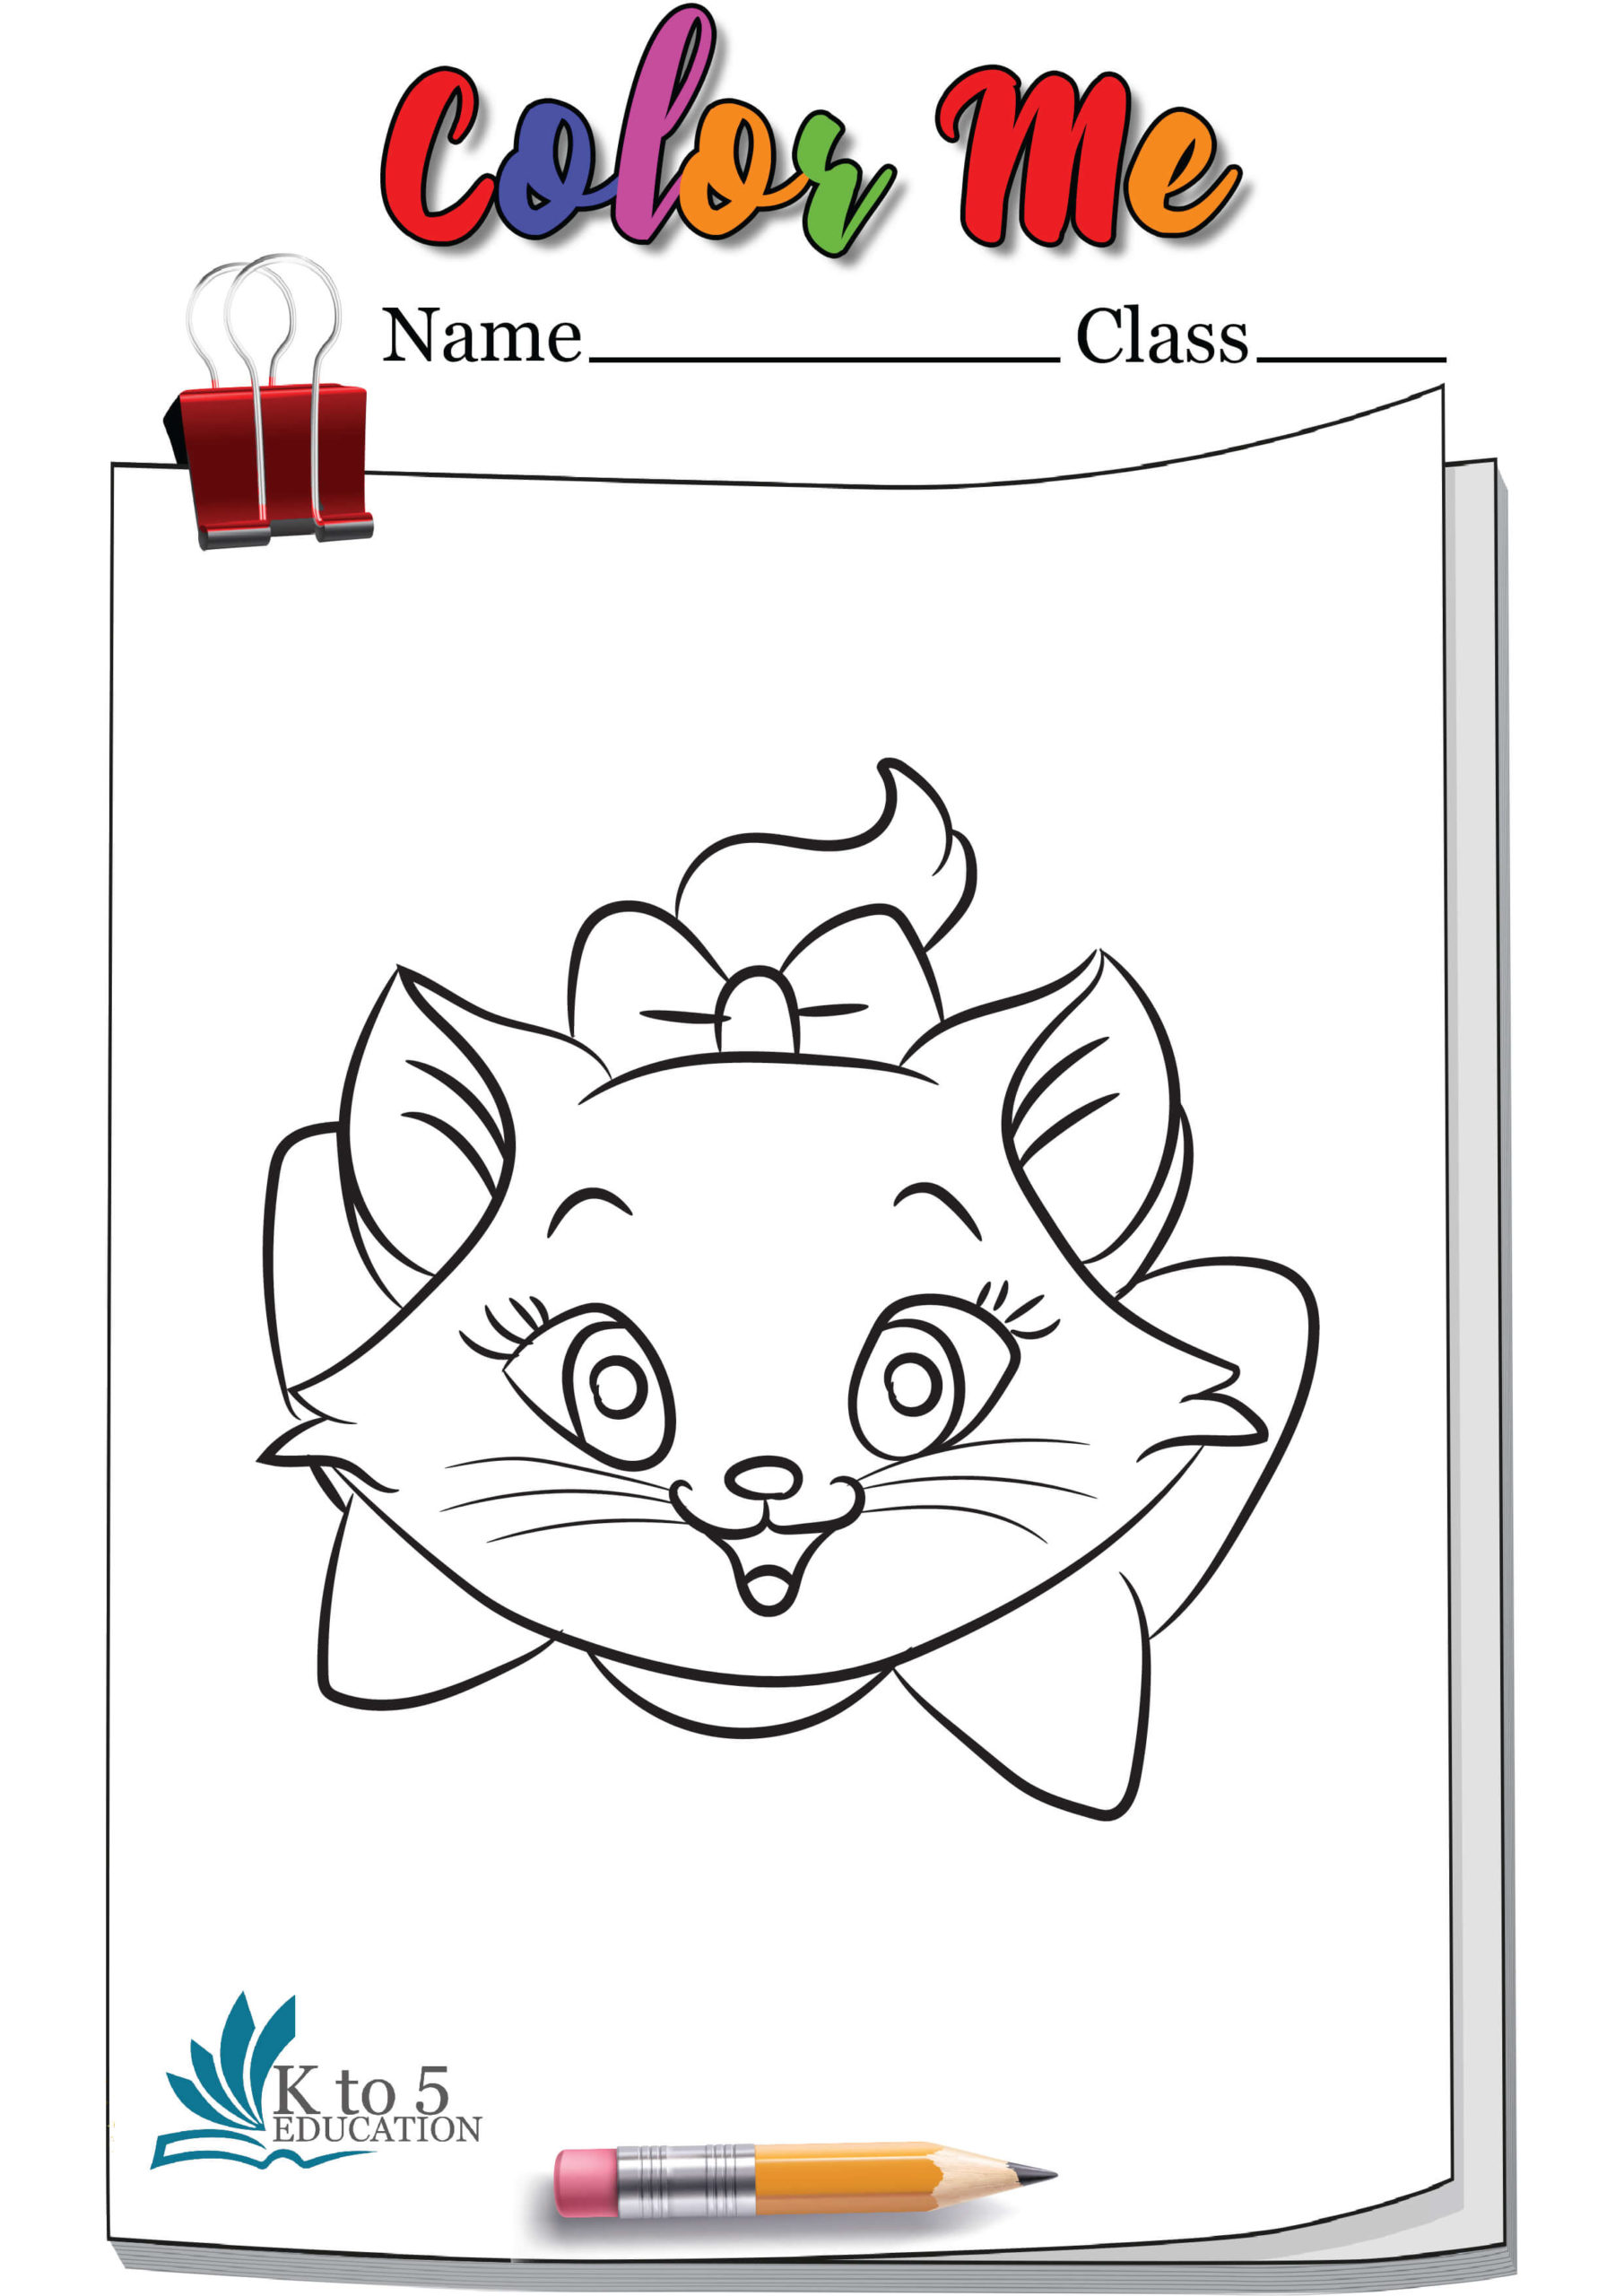 Cat smiling head coloring page worksheet